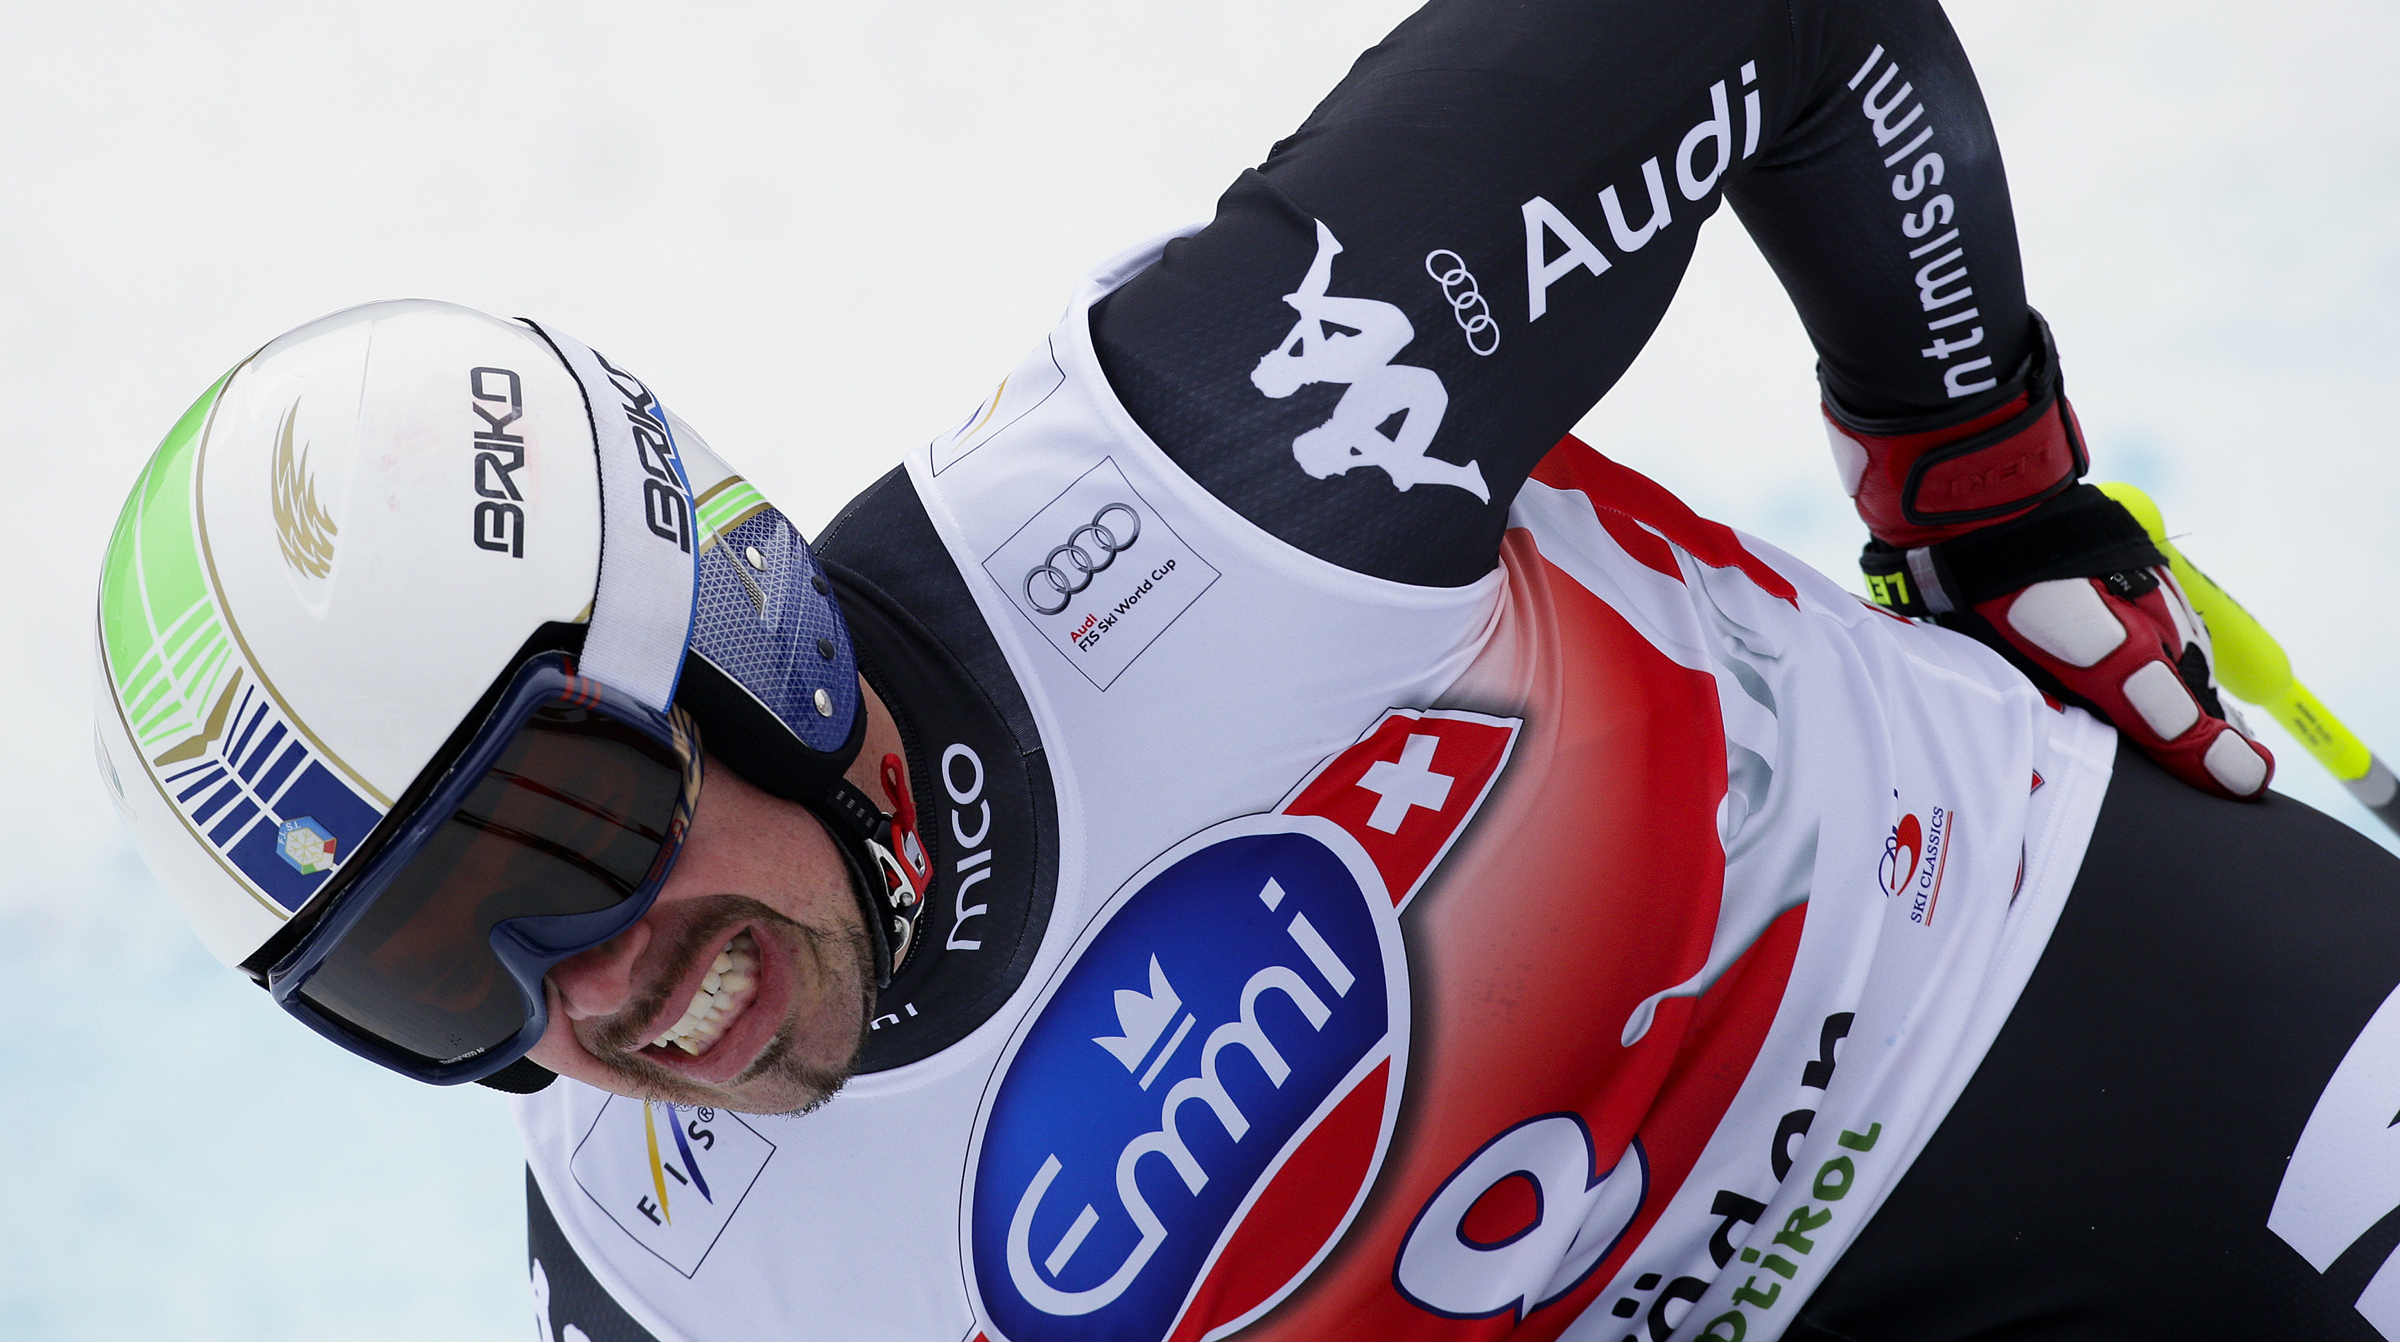 Peter Fill of Italy reacts in pain from a crash in the last gate, after crossing the finish line during the men's World Cup Super-G skiing race in Val Gardena December 20, 2013. REUTERS/Max Rossi (ITALY - Tags: SPORT SKIING) - RTX16PIN